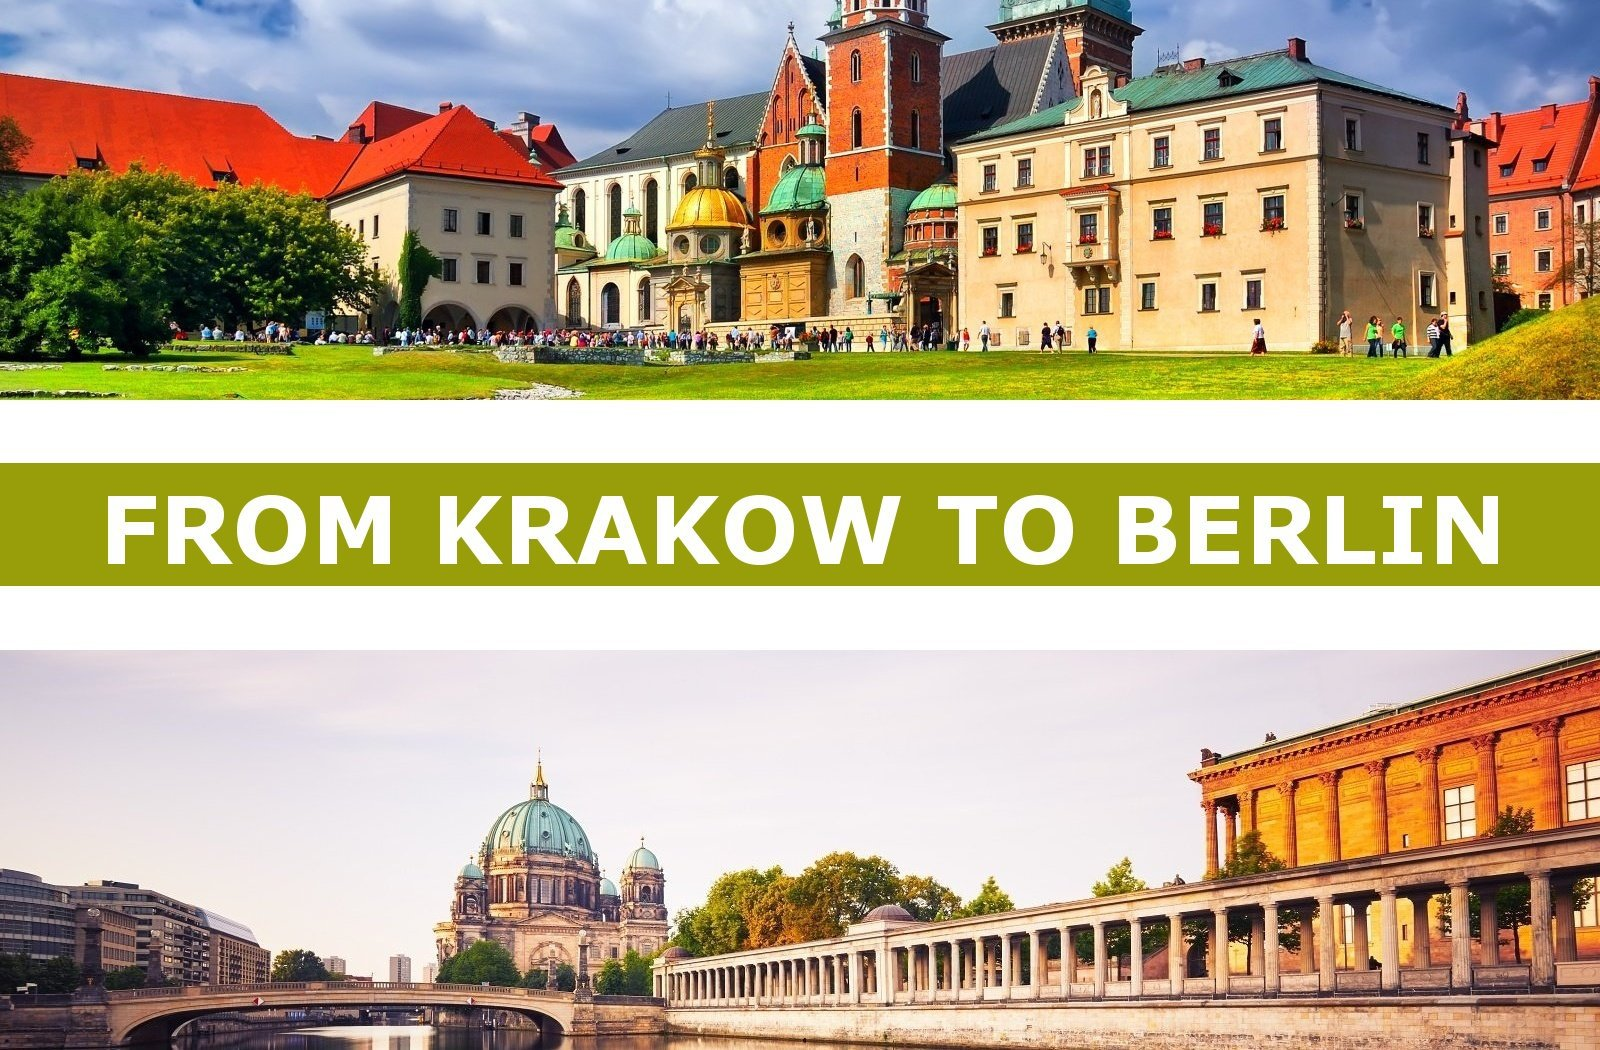 Taxi transfer from Krakow to Berlin